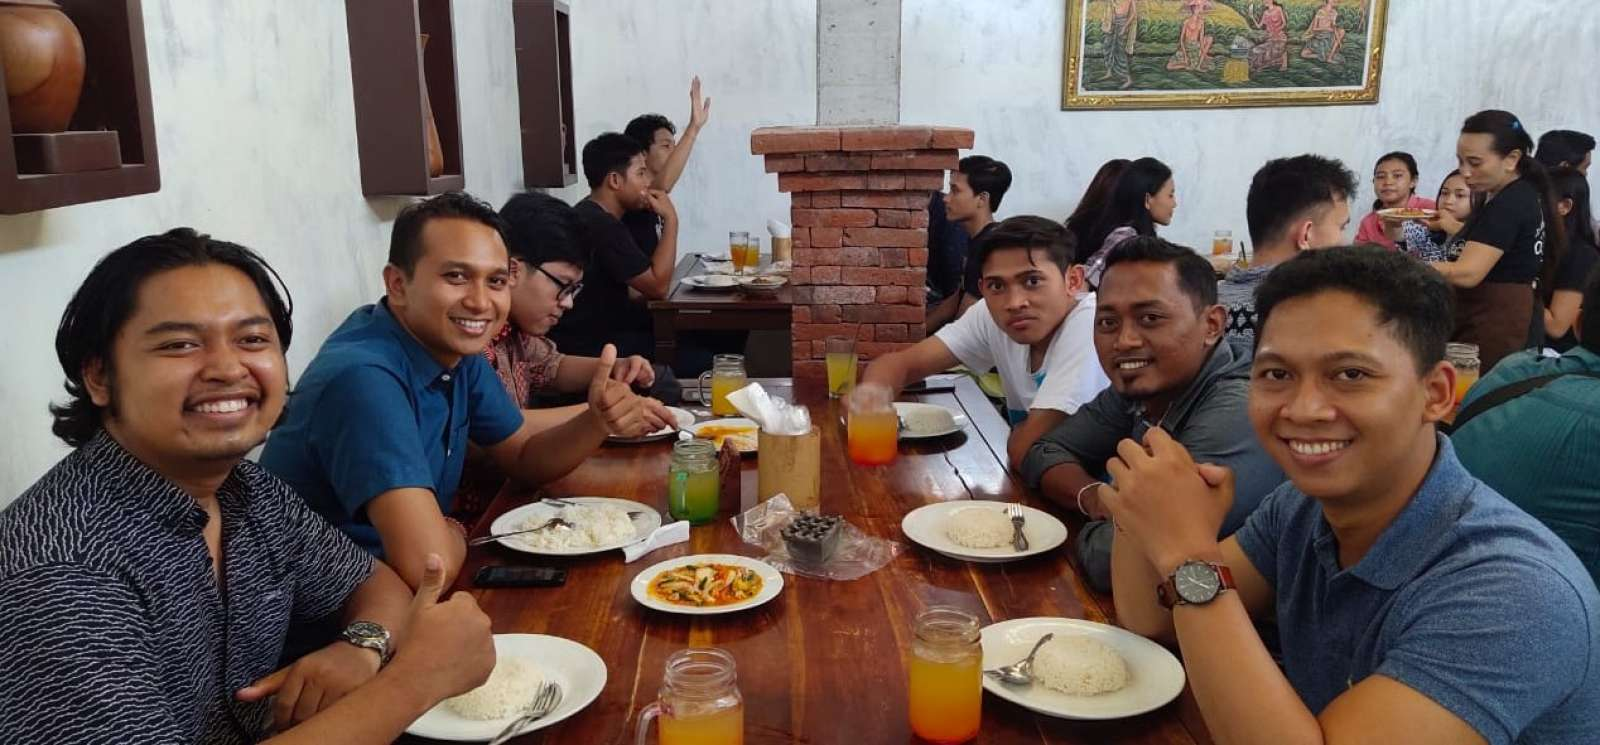 The Gathering of Emporio Architect Bali's Team at Kepiting Pan Kuncung 1